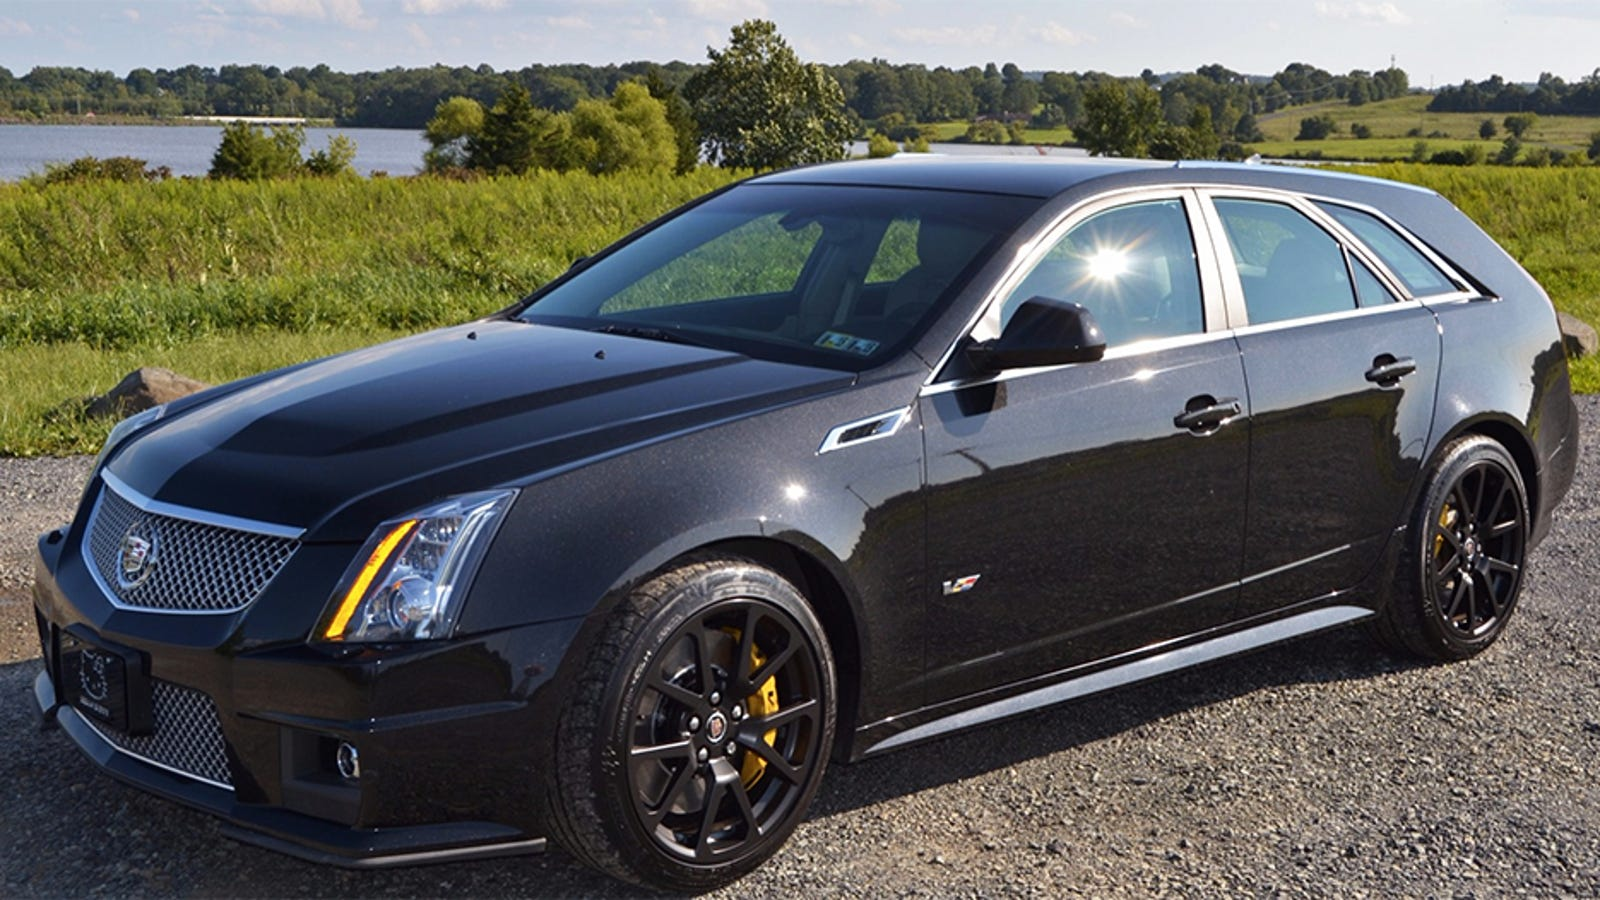 cadillac upon beautiful with elegant car choices v plus cts wagon